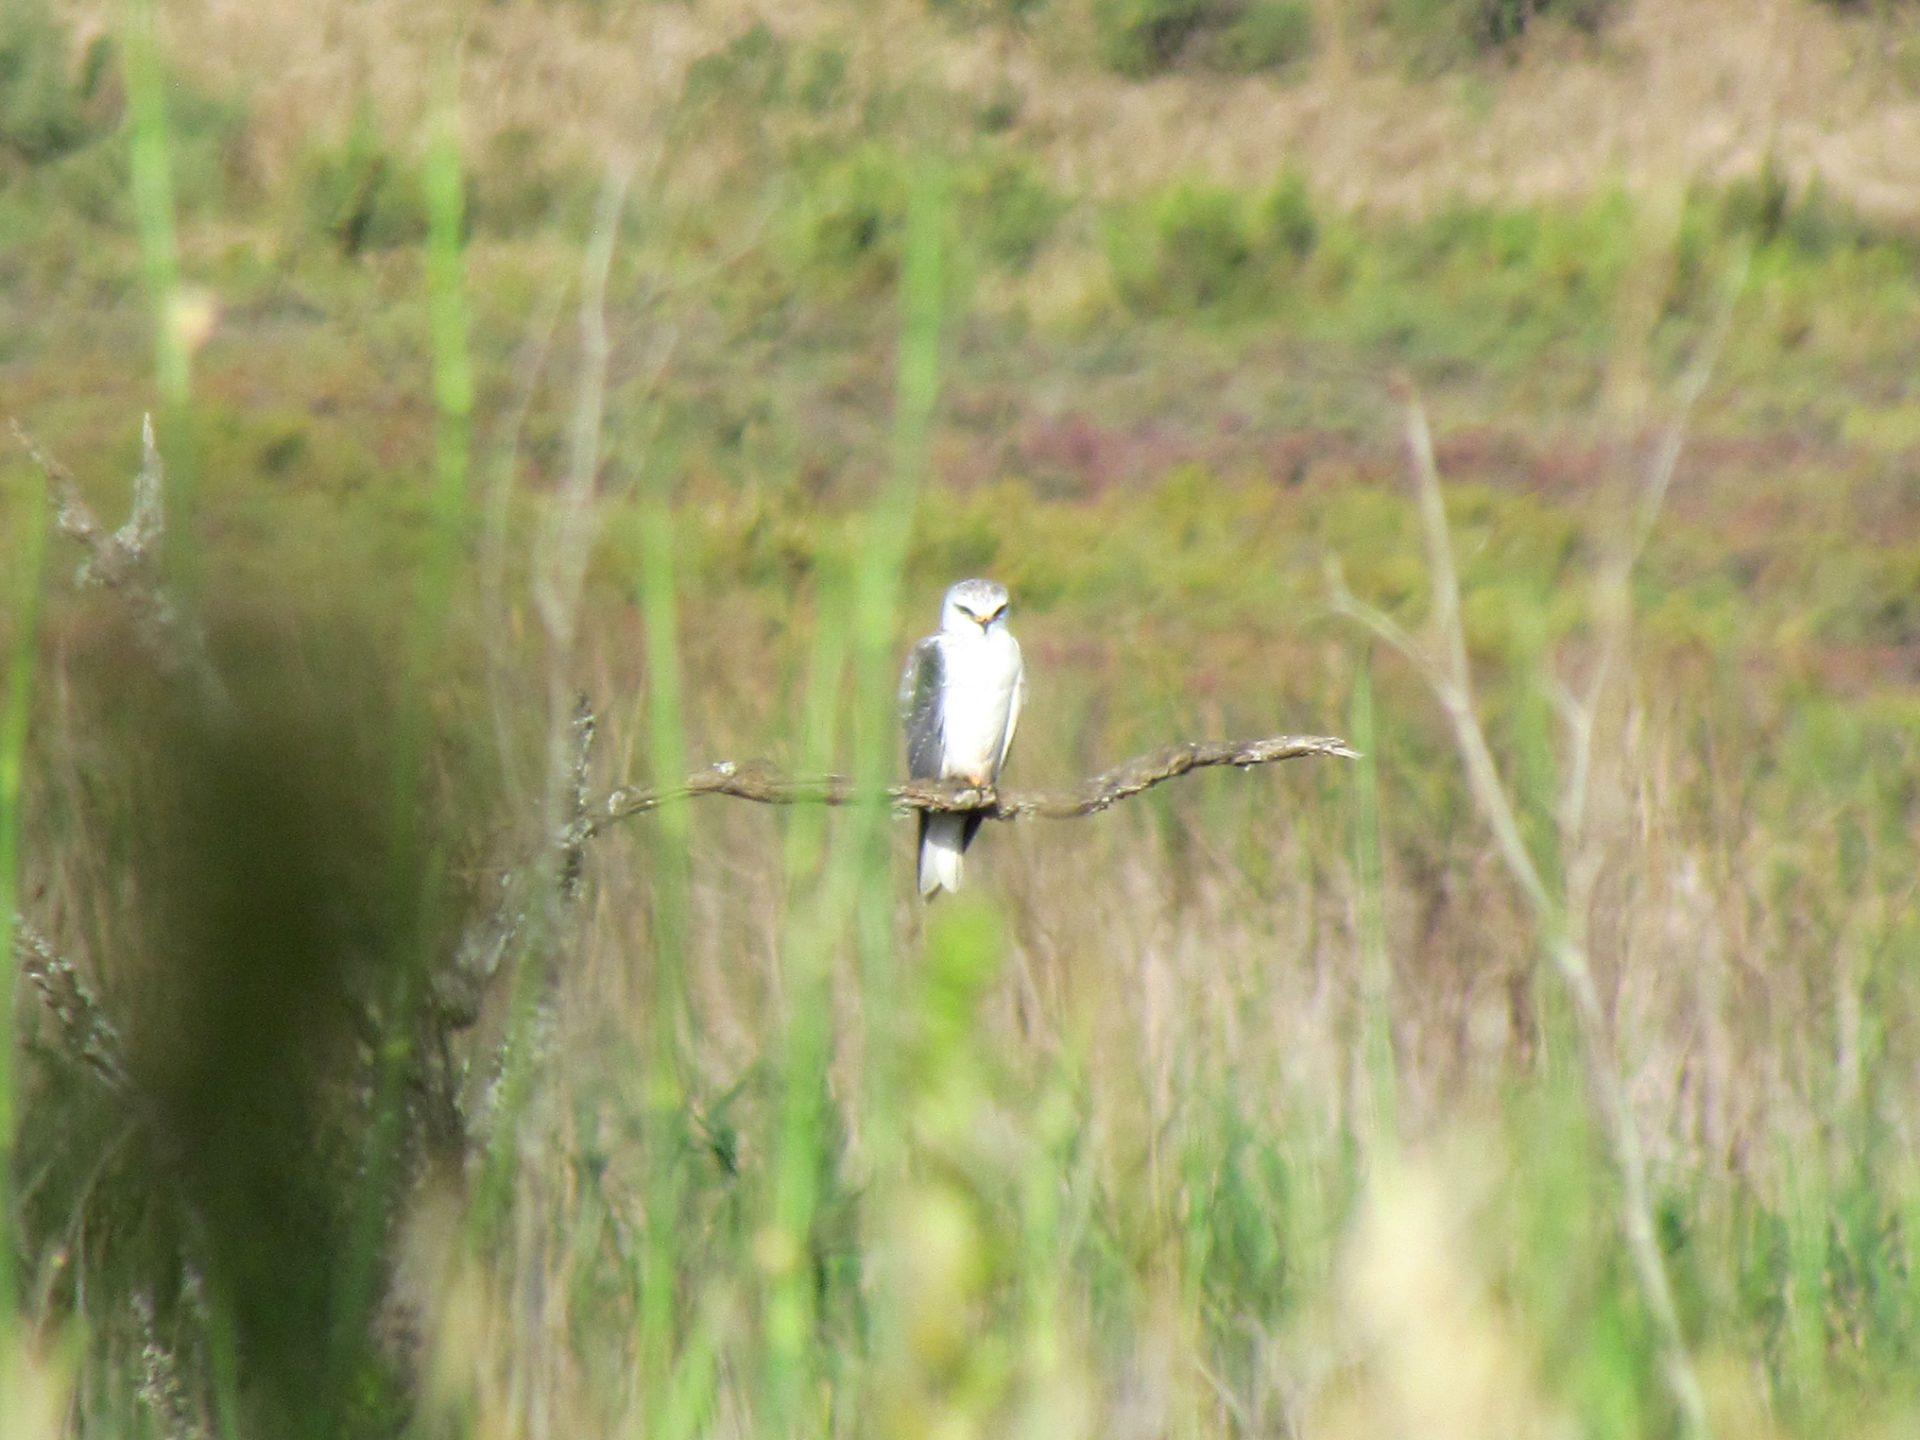 Juvenile Black-winged Kite perched on a branch